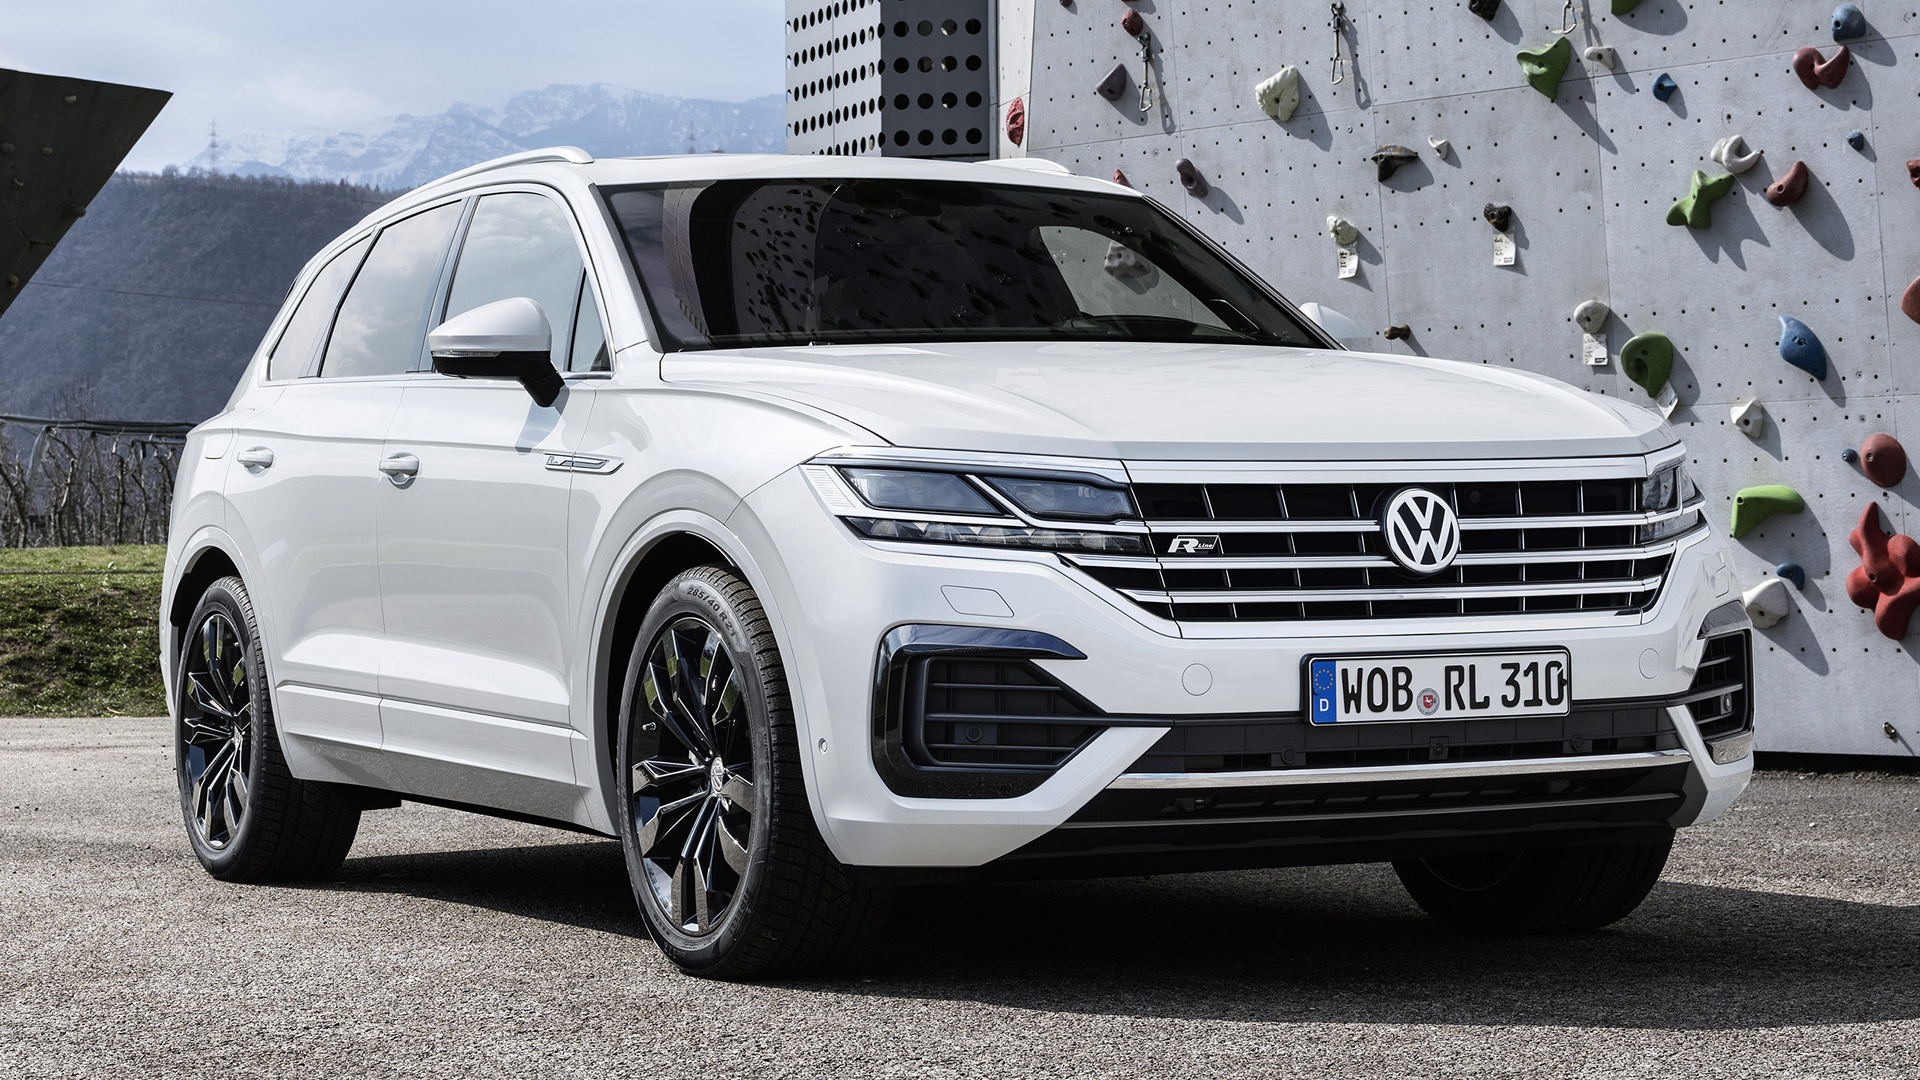 2018 Volkswagen Touareg R Line HD Wallpaper Background Image 1920x1080